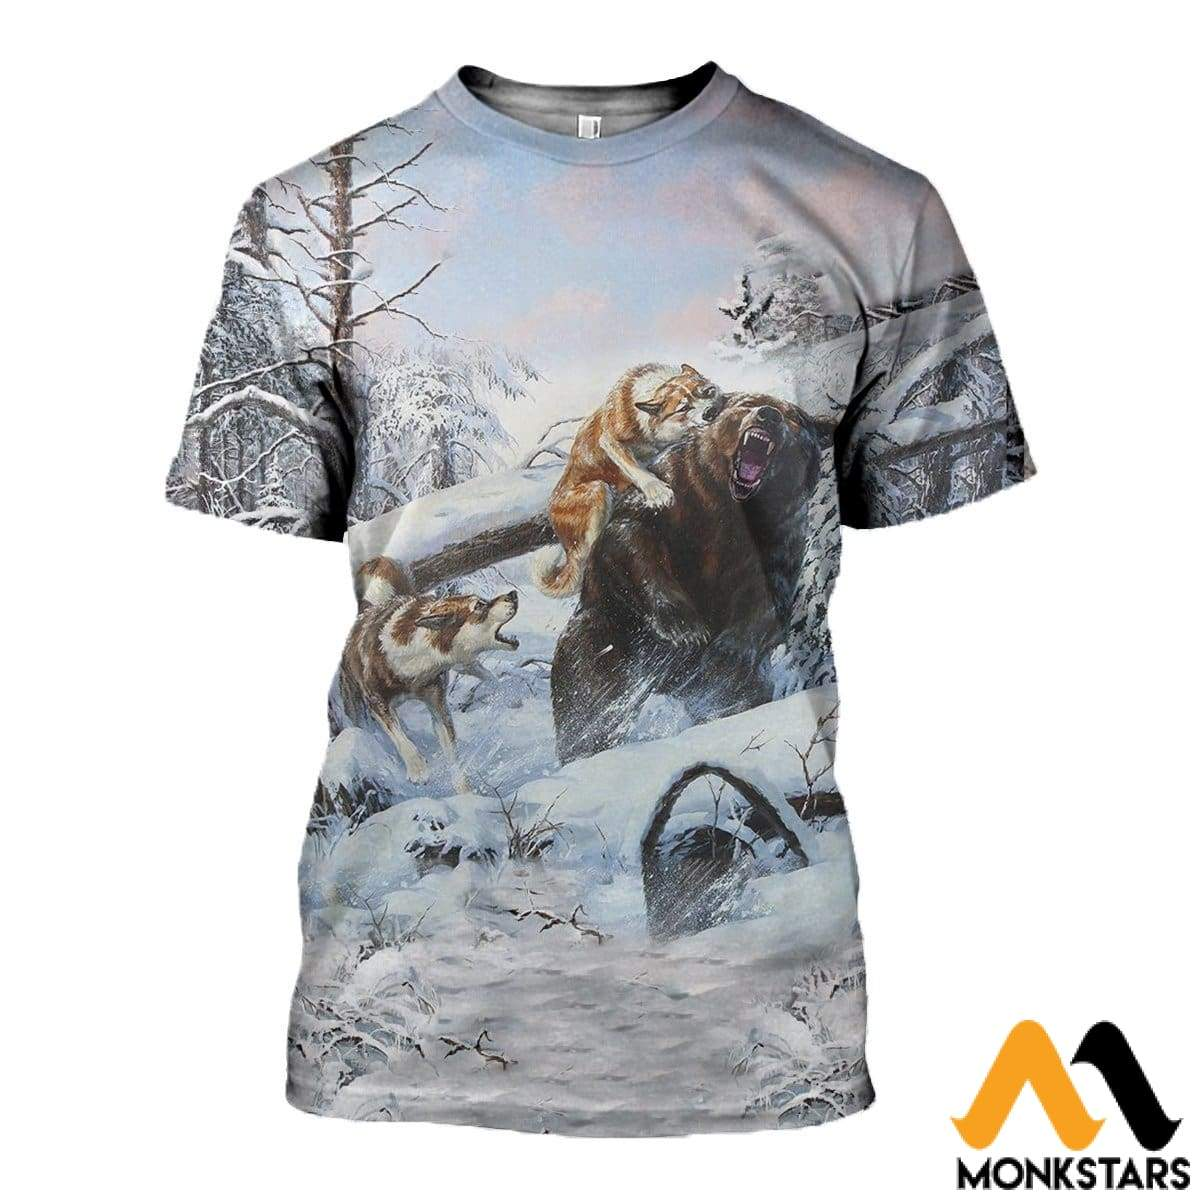 3D All Over Printed Hunting Bears In Winter Shirts And Shorts T-Shirt / Xs Clothes